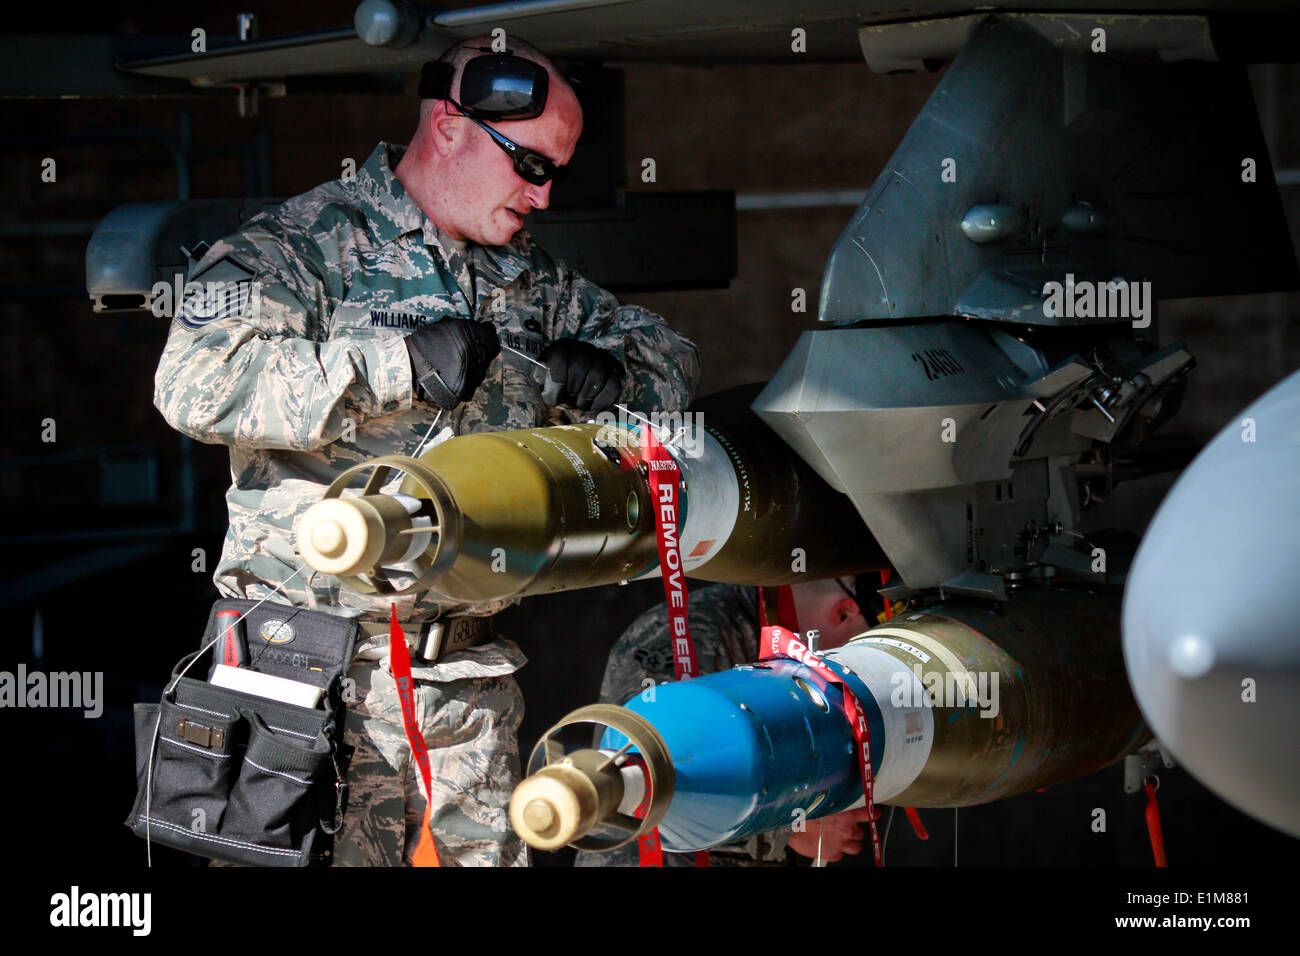 u s air force master sgt keith williams an aircraft armament stock photo u s air force master sgt keith williams an aircraft armament systems specialist assigned to the 177th aircraft maintenance s